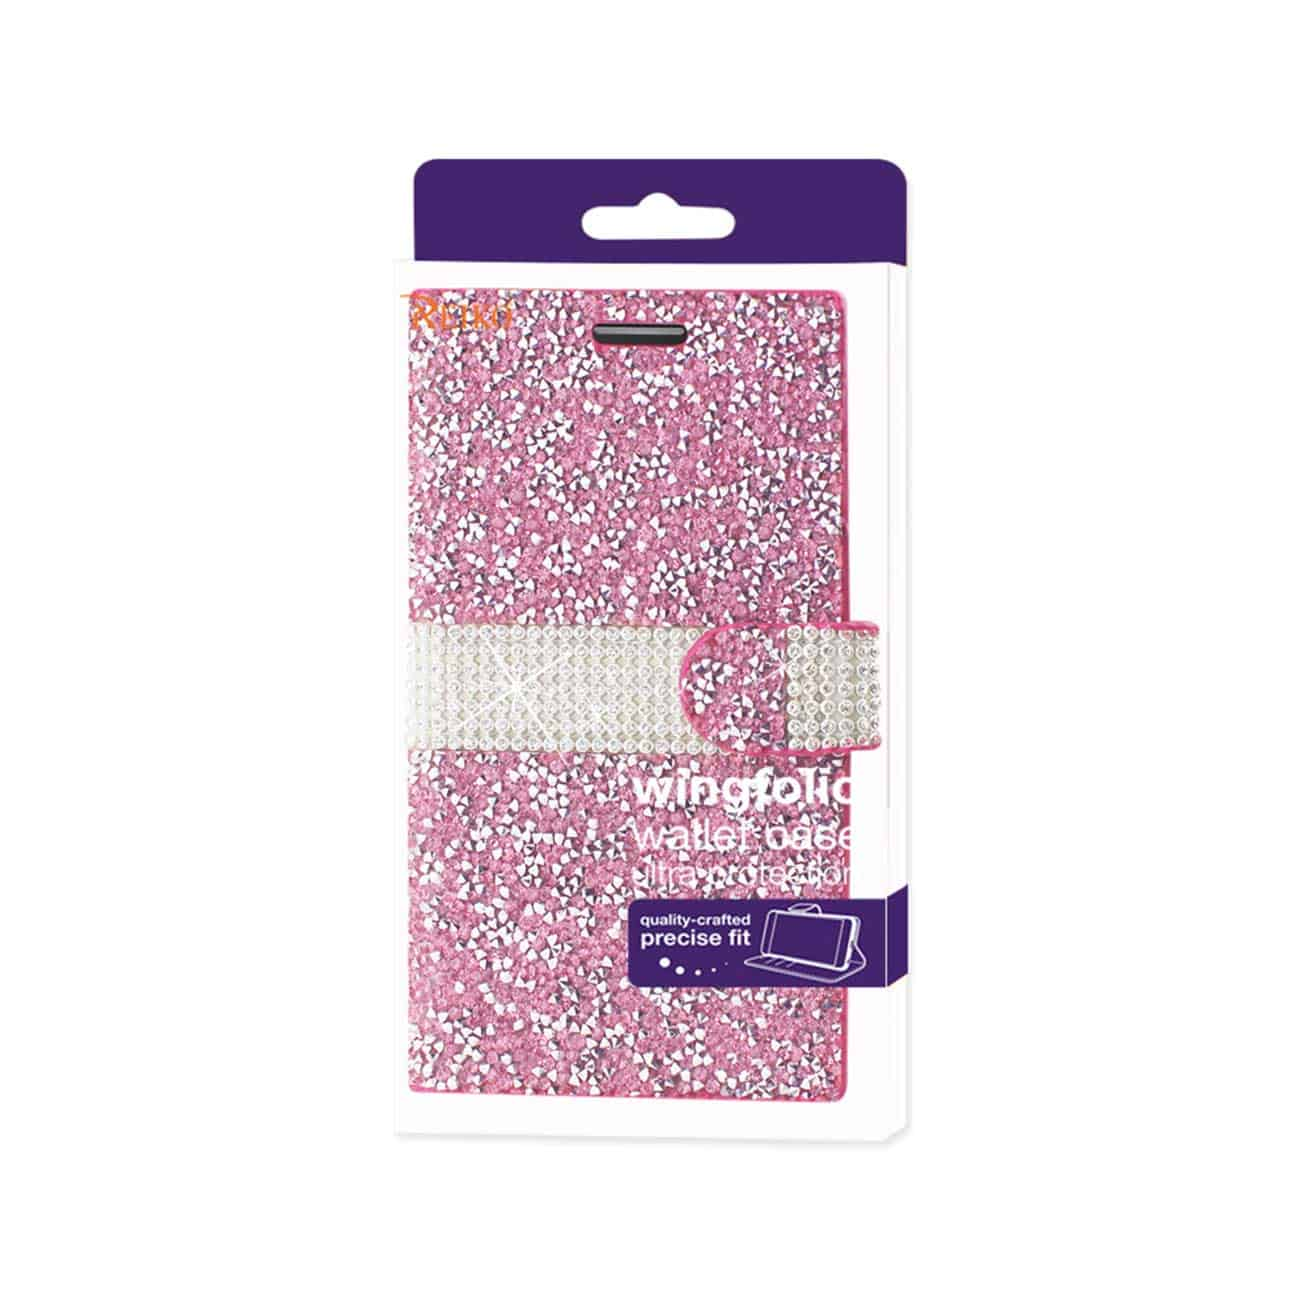 SAMSUNG GALAXY J7 JEWELRY RHINESTONE WALLET CASE IN PINK